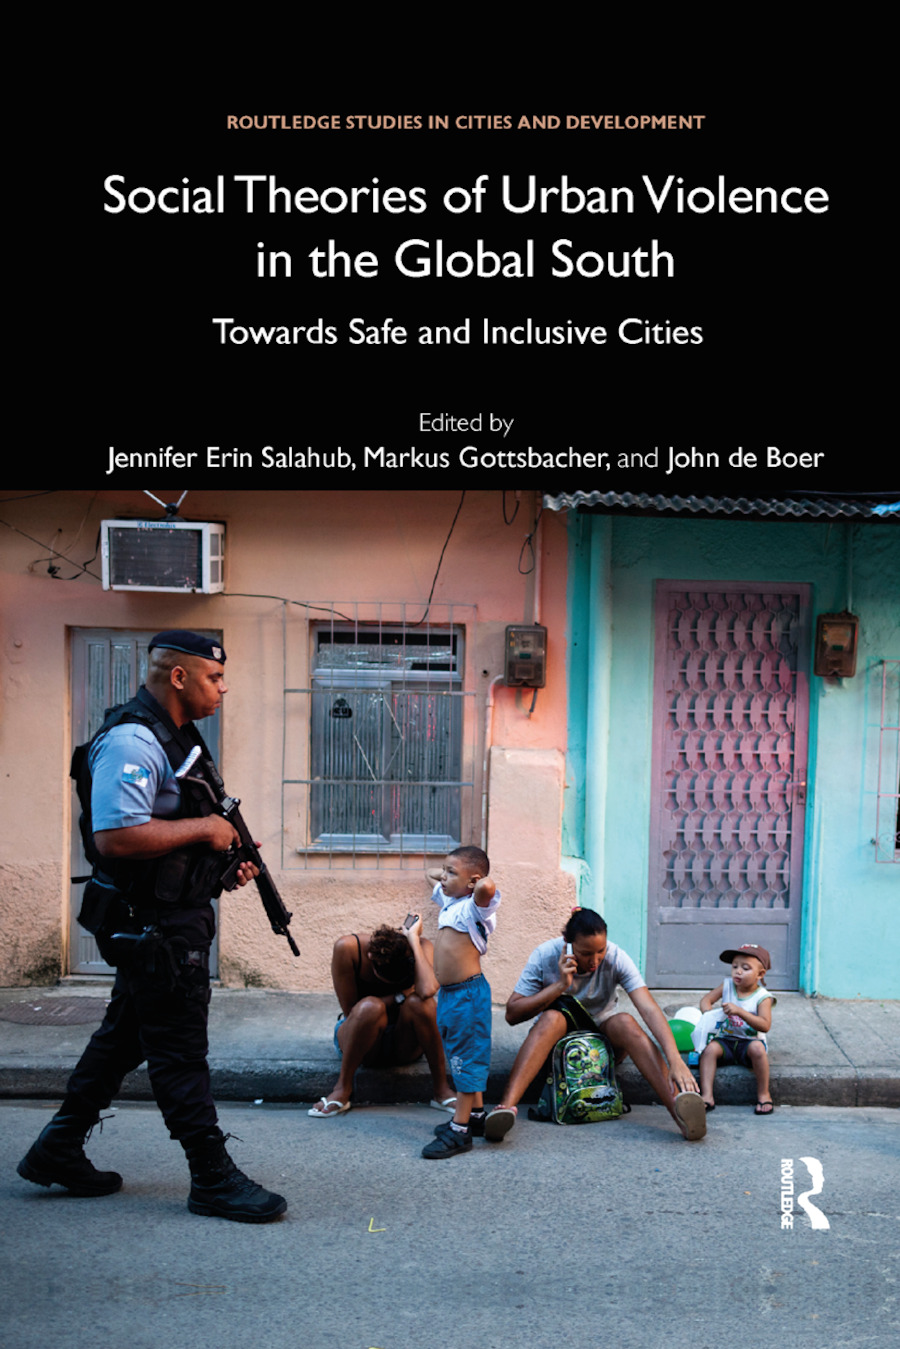 Social Theories of Urban Violence in the Global South: Towards Safe and Inclusive Cities book cover